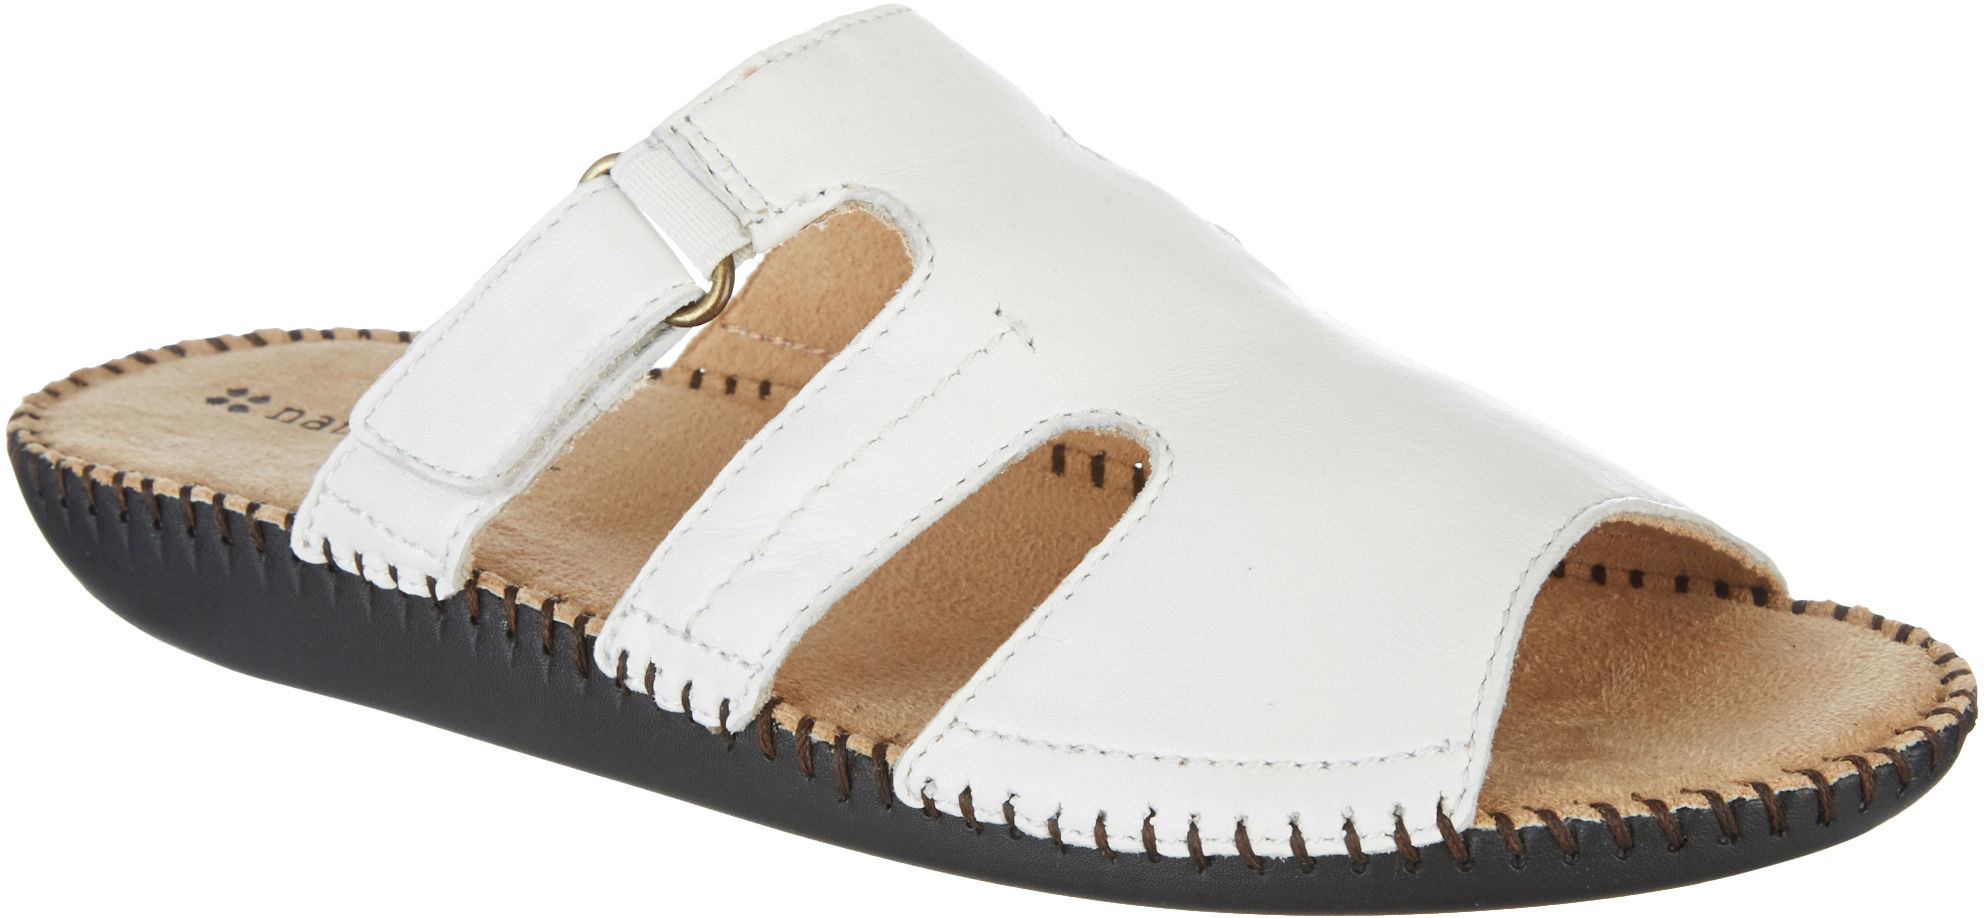 Finish your look with stylish and comfortable shoes from HSN. These comfort shoes will reduce fatigue and foot pain, while also looking fantastic.